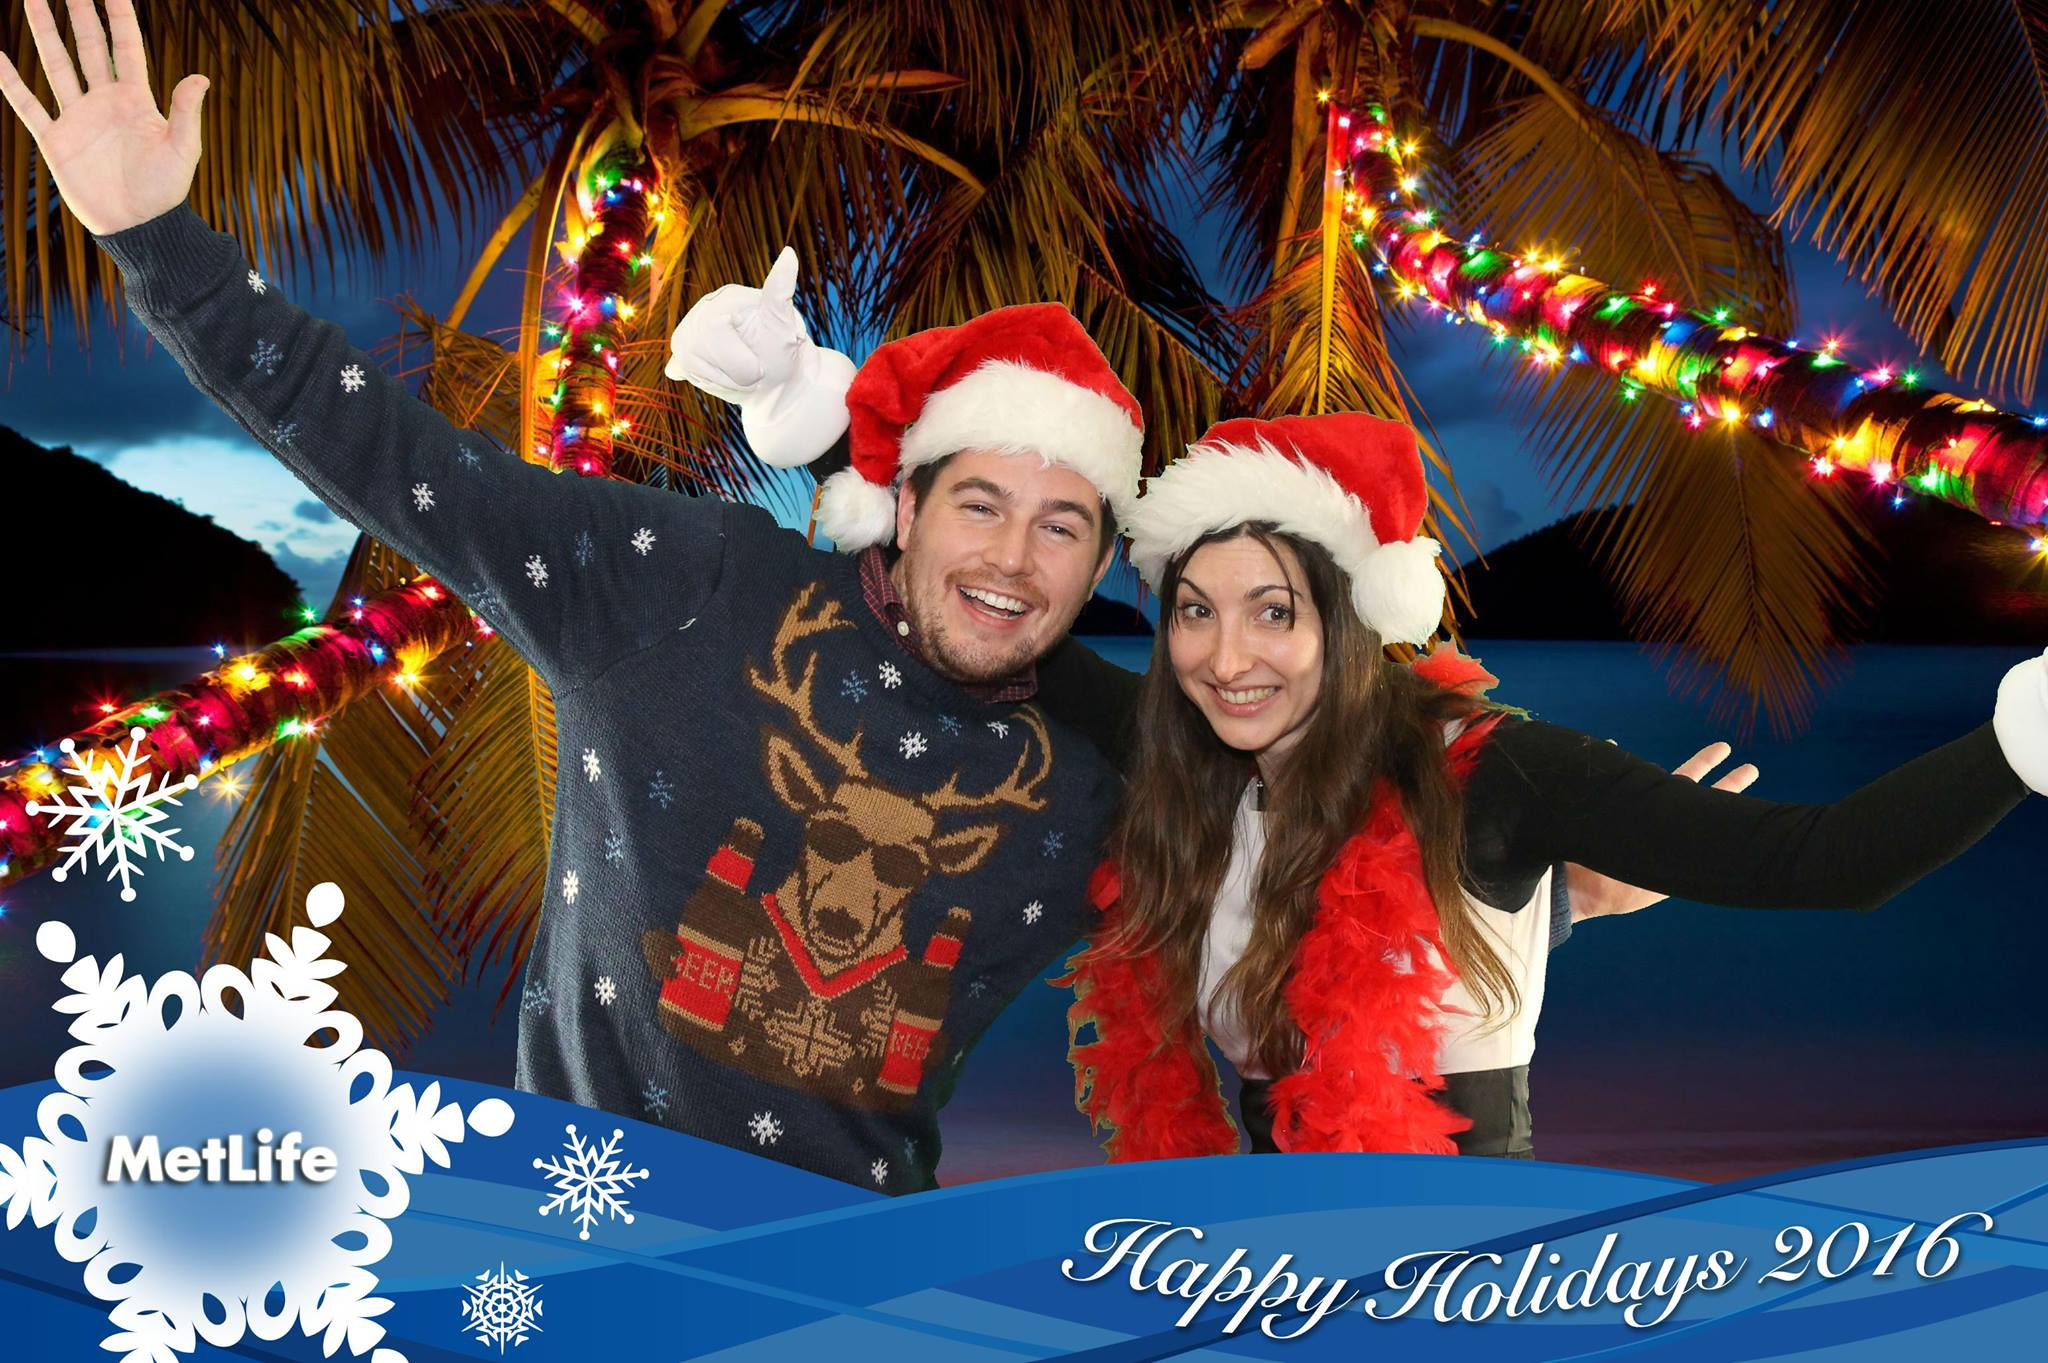 TapSnap Christmas Photo Booth